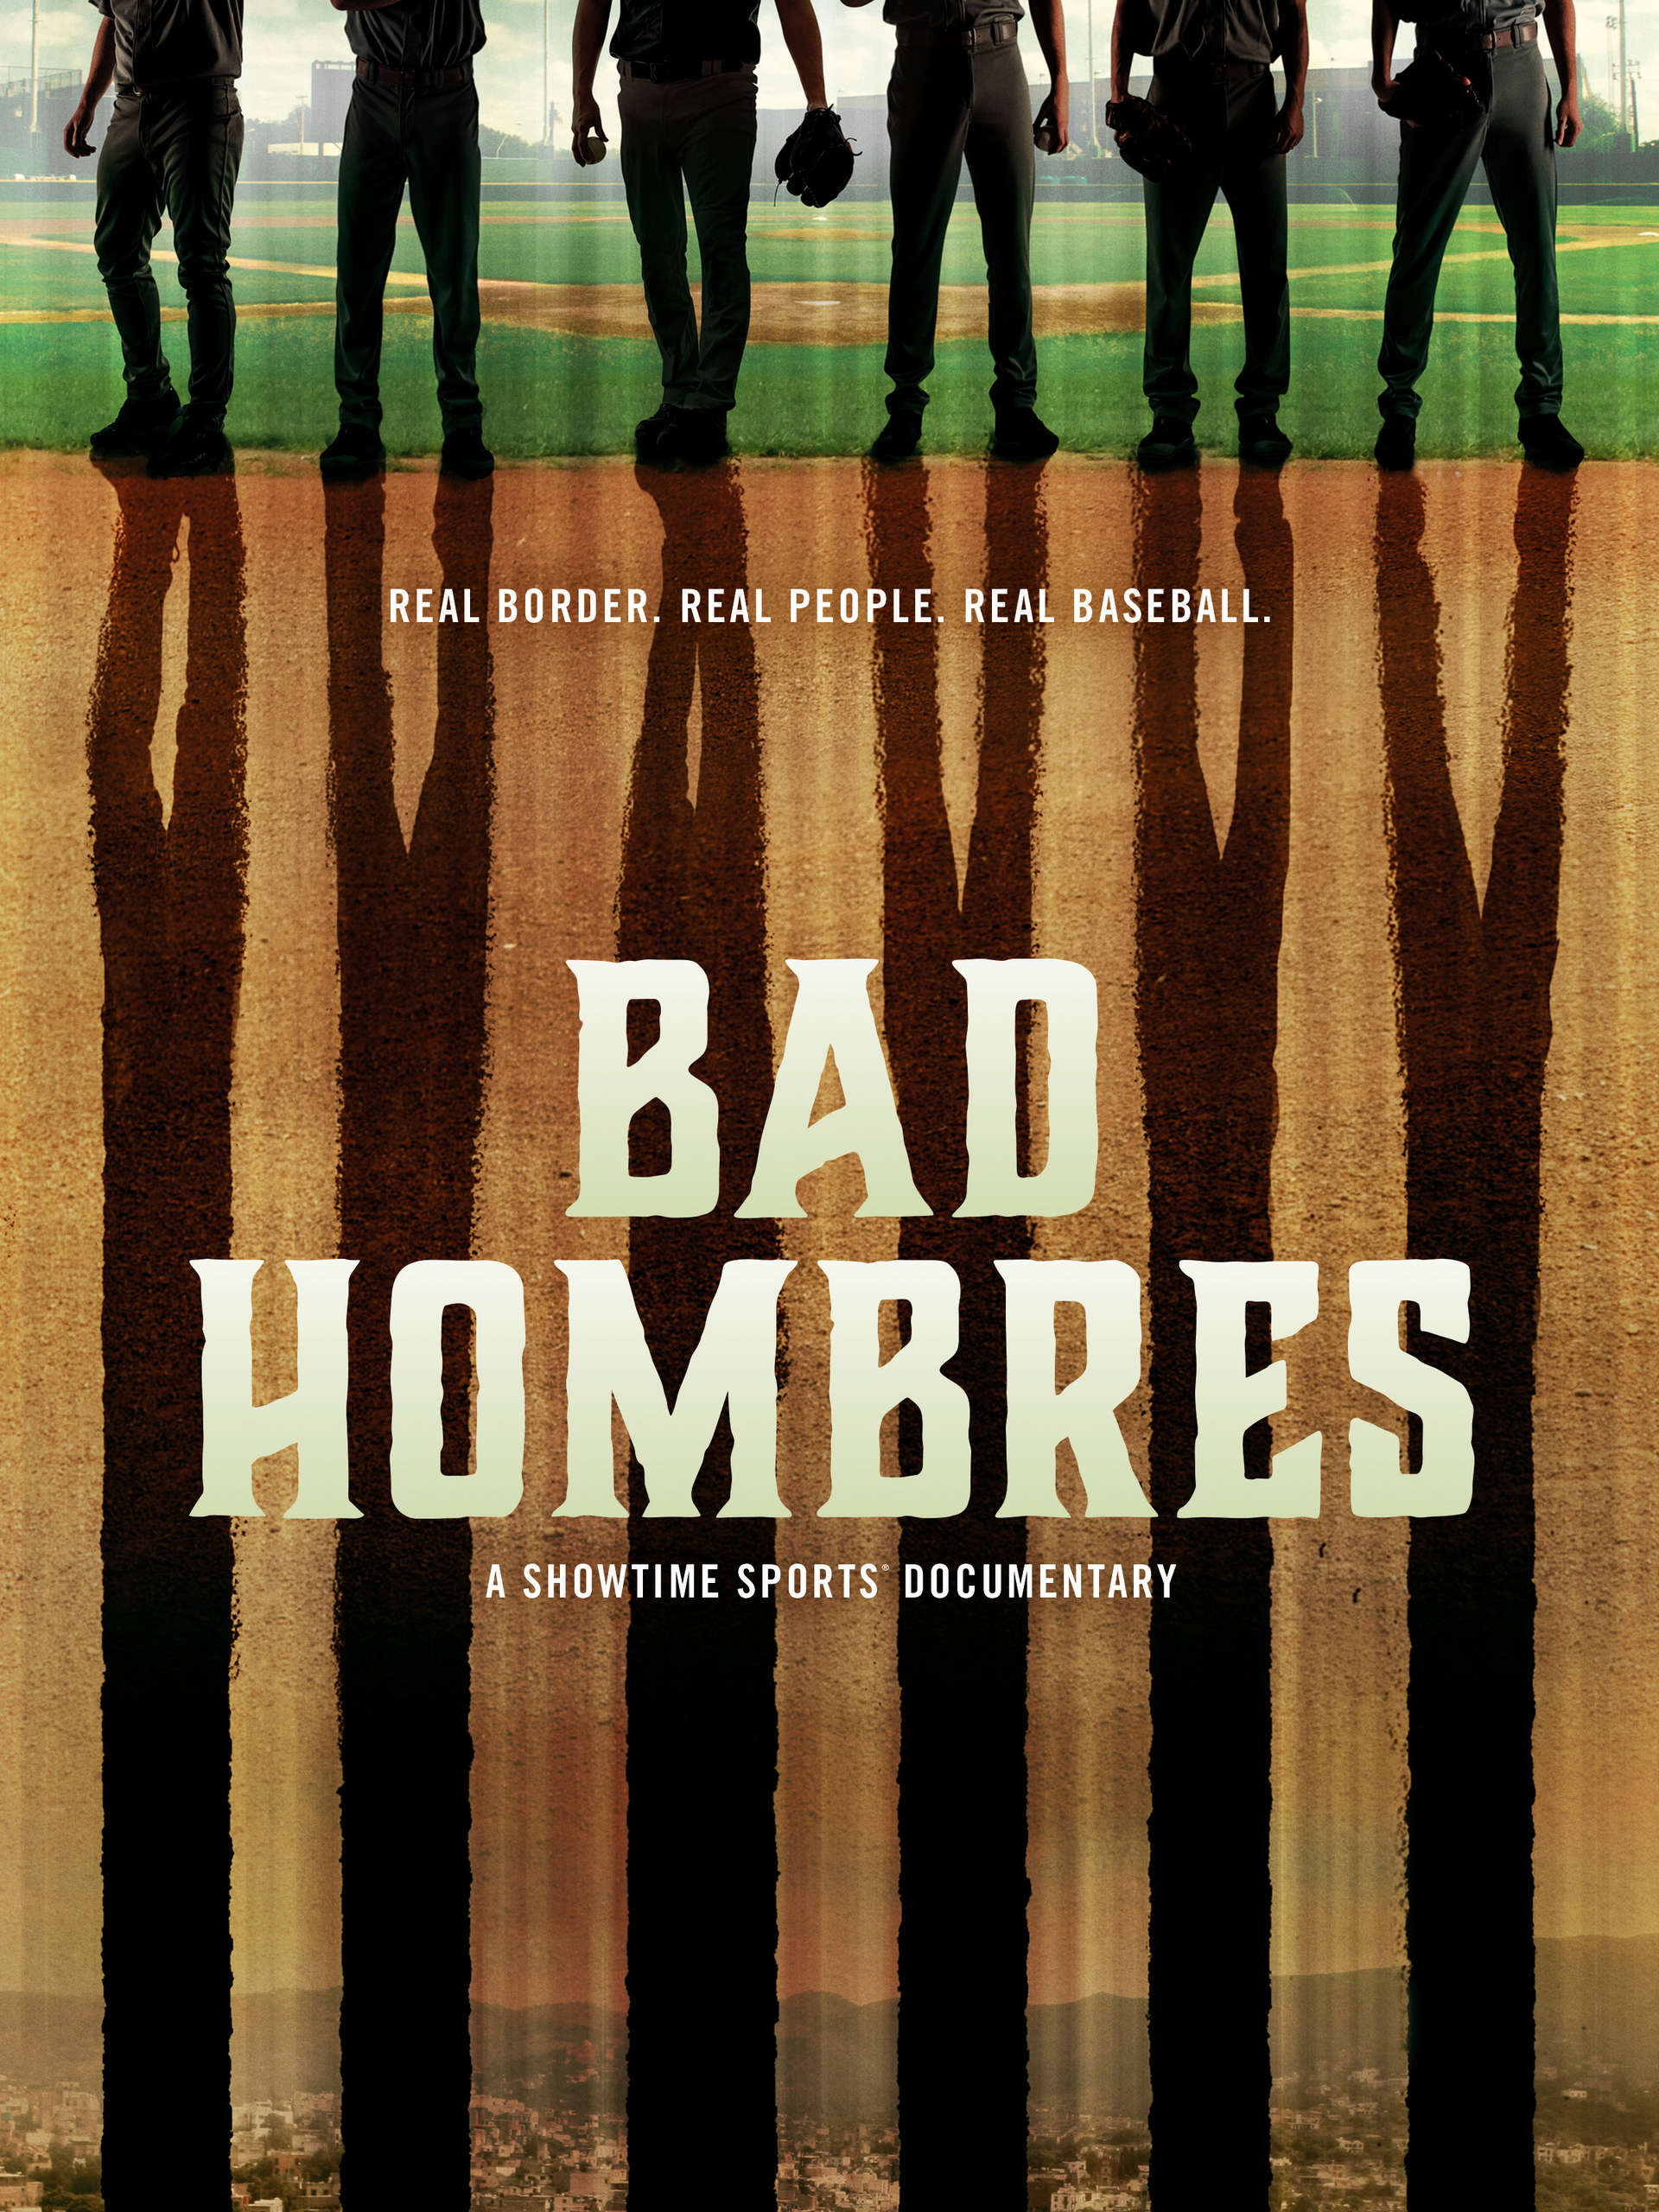 watch Bad Hombres on soap2day